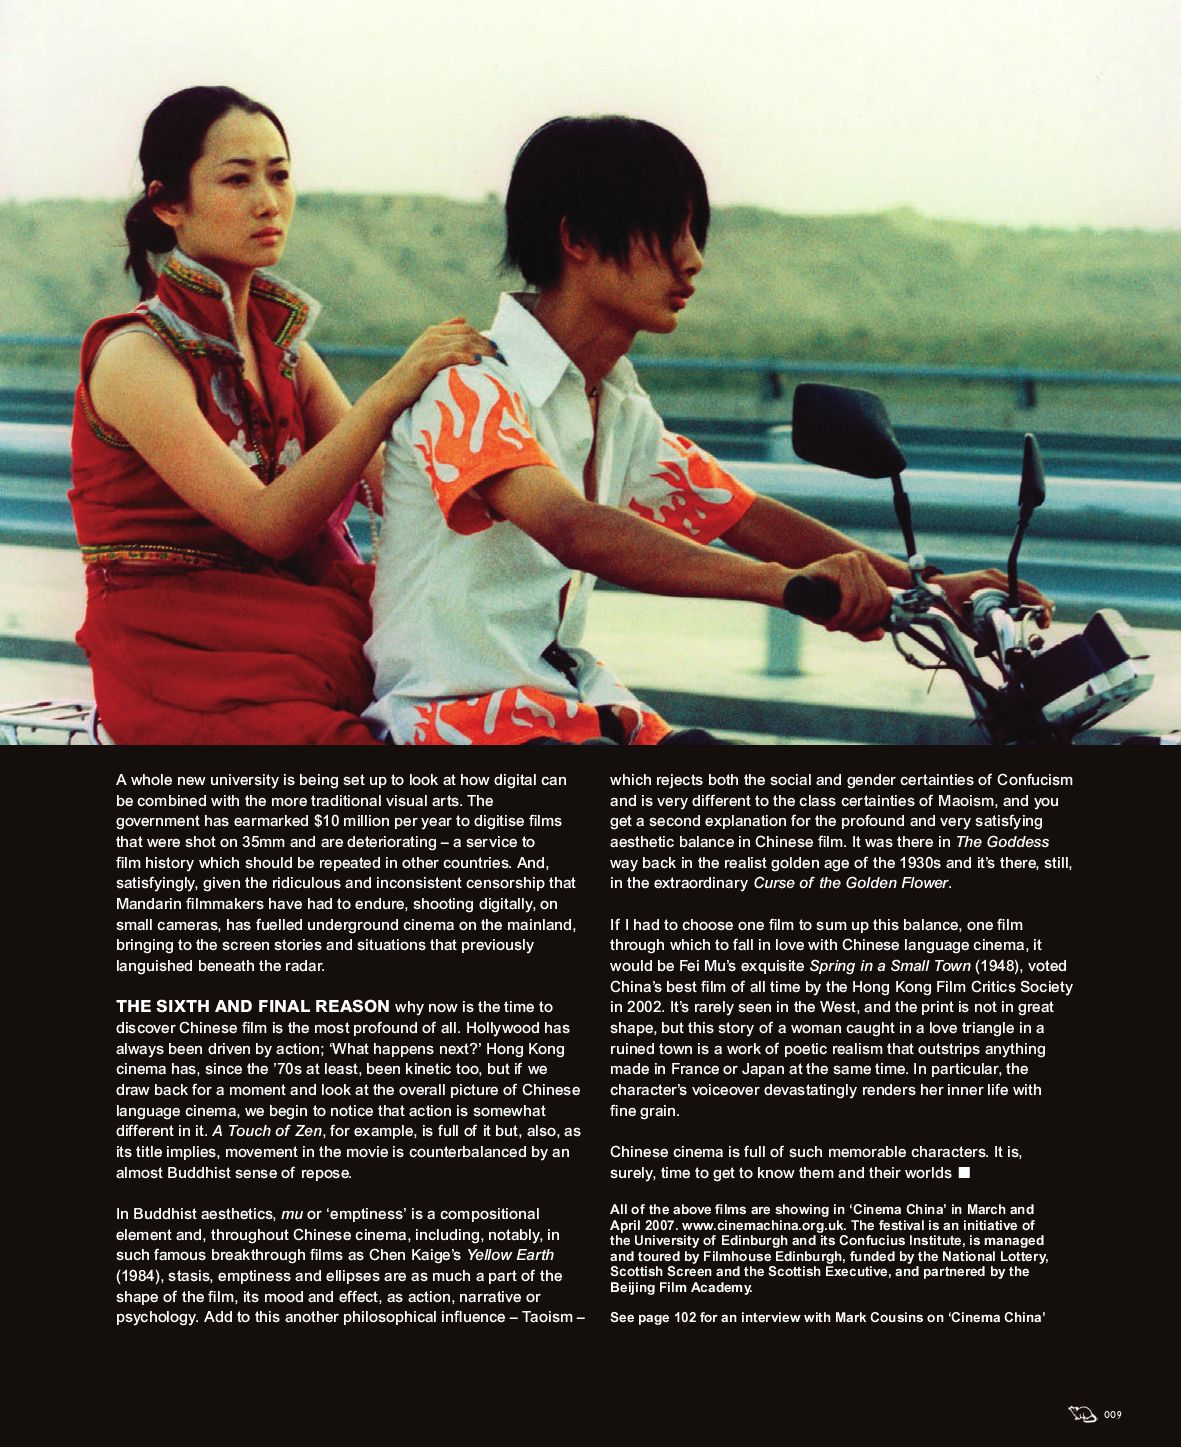 Little White Lies 10 - The Chinese Film Issue by The Church